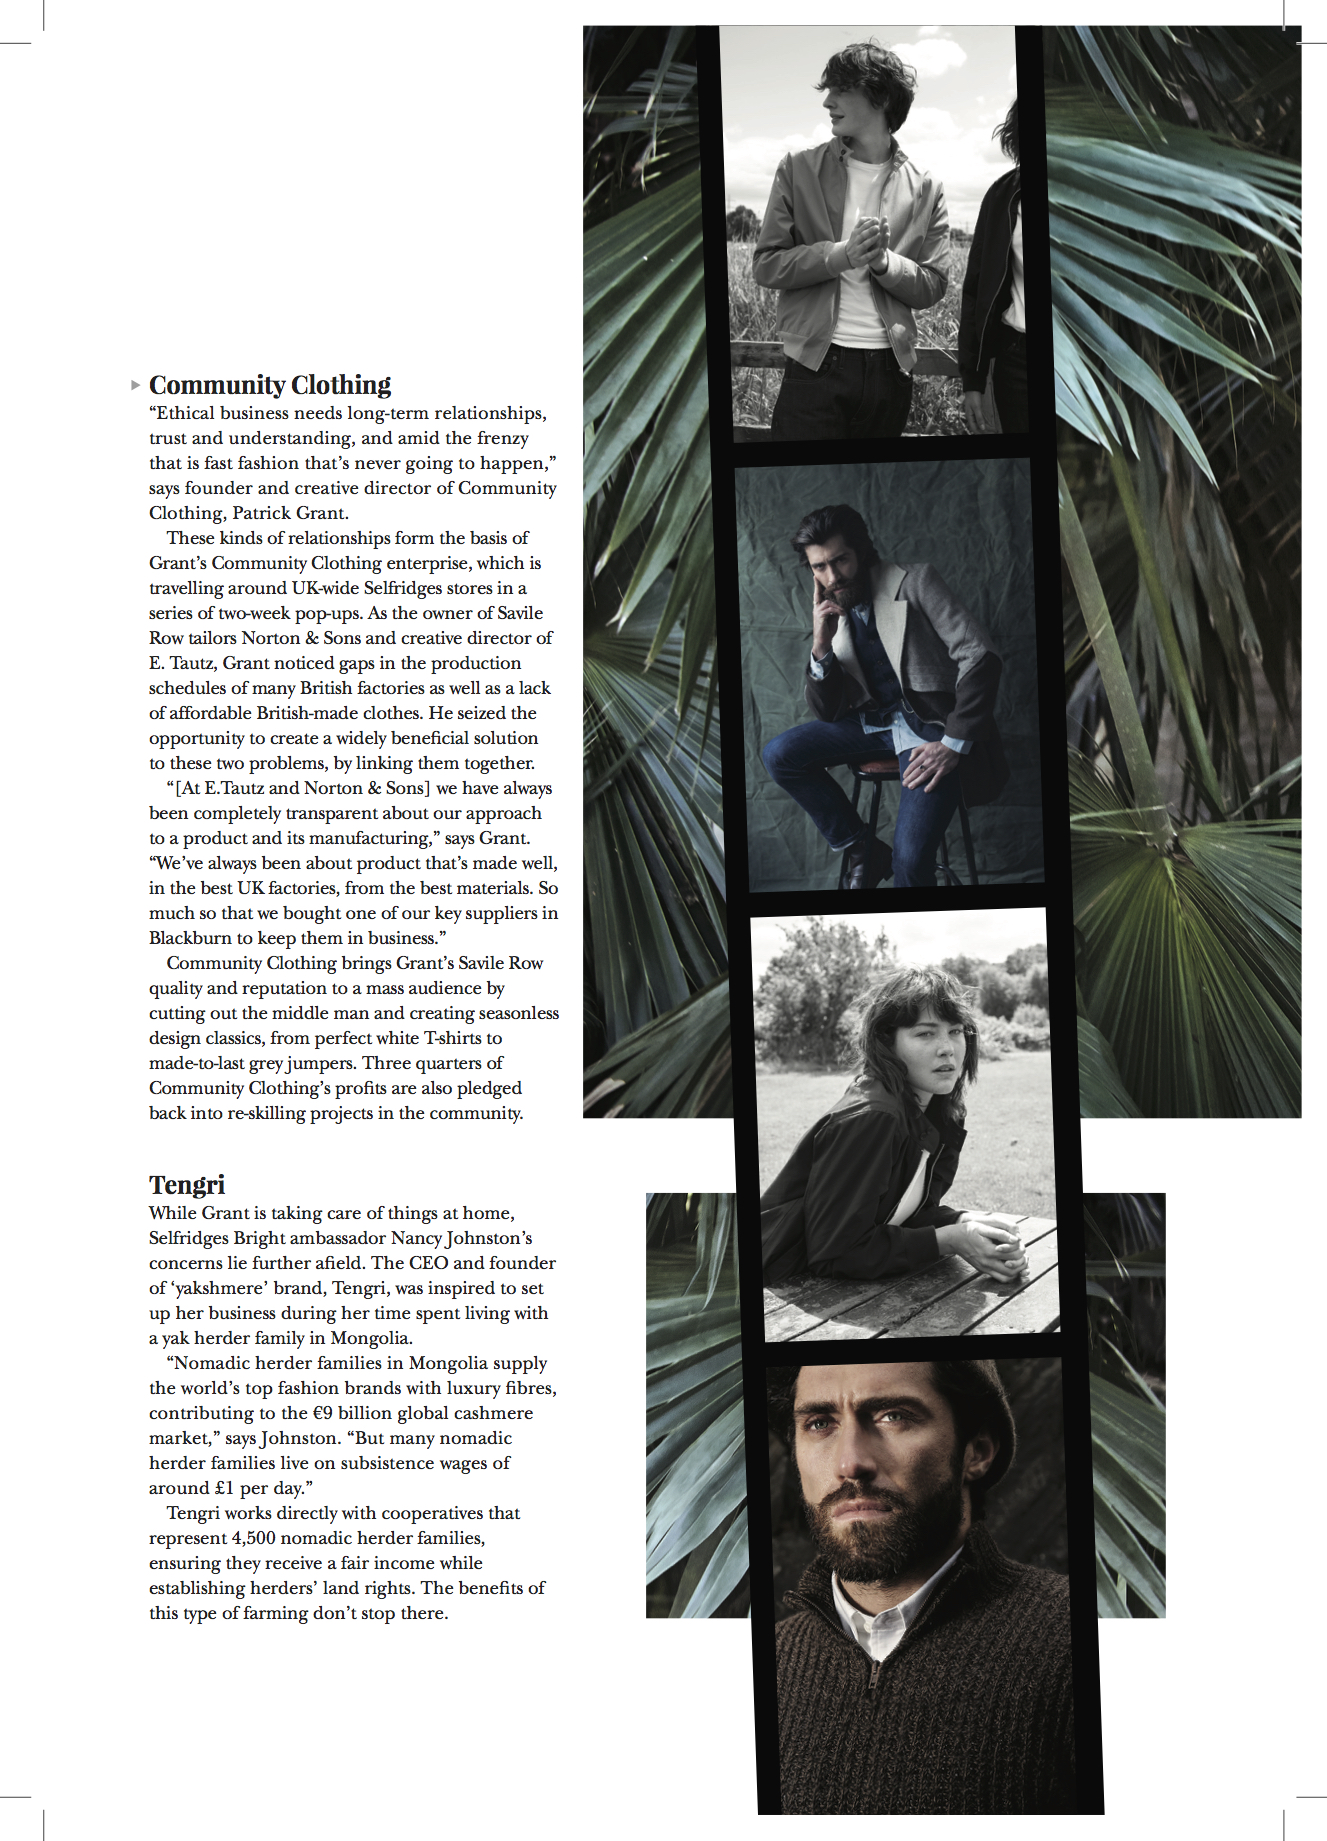 032 MAYF MAR 17 FEATURE - SUSTAINABLE FASHION.jpg